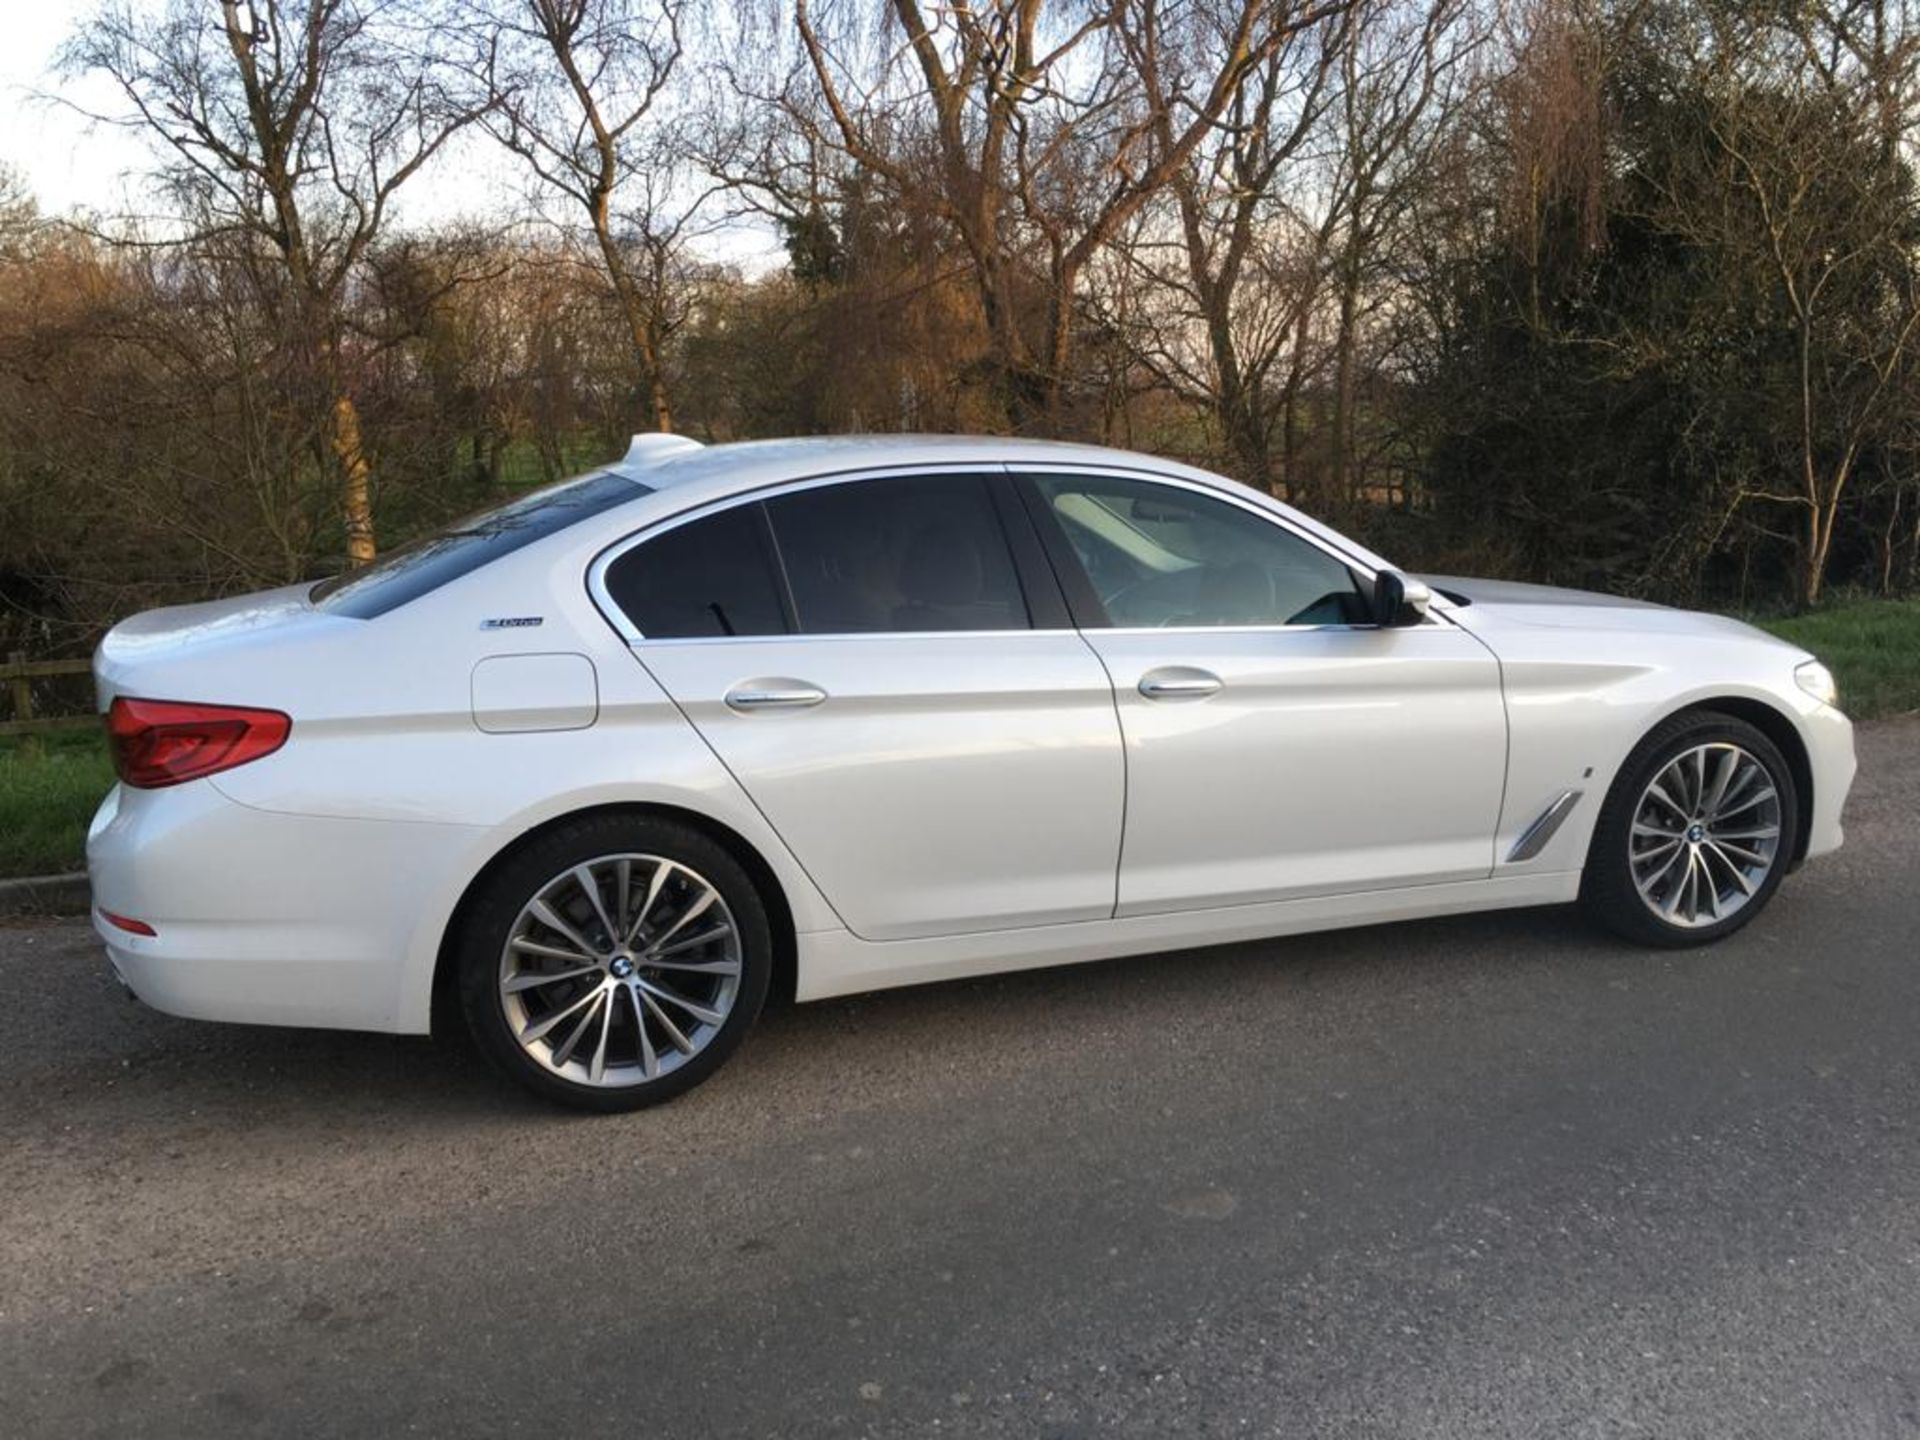 2018 BMW 530E 2.0 SE HYBIRD SALOON AUTOMATIC - Image 10 of 34